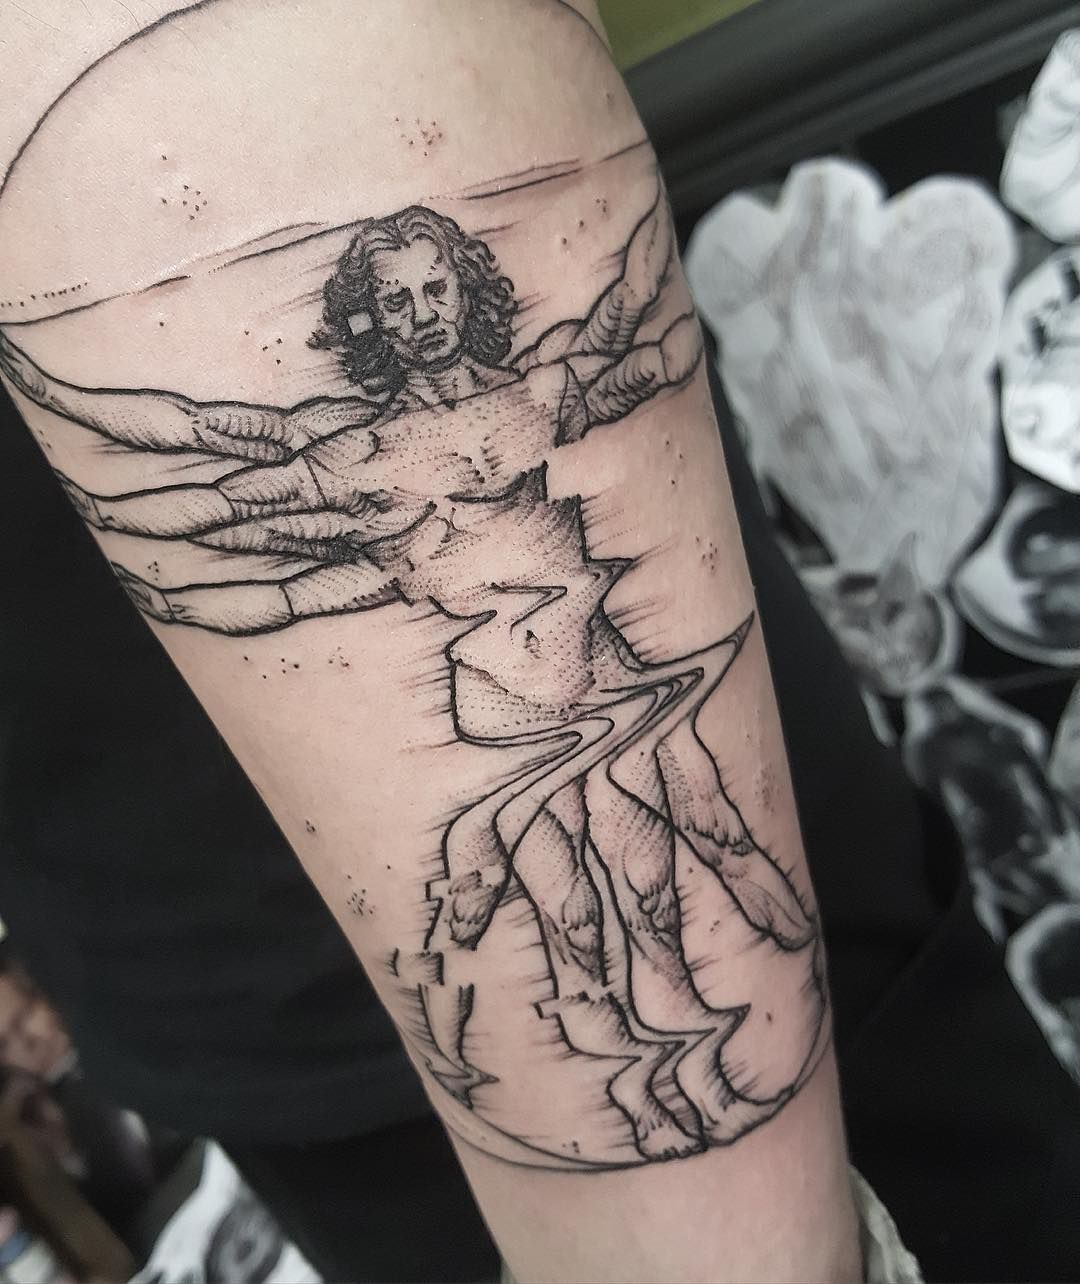 Tattoo Ideas Quick: A Quick Vitruvian Man From The Other Day. Thanks Mauro